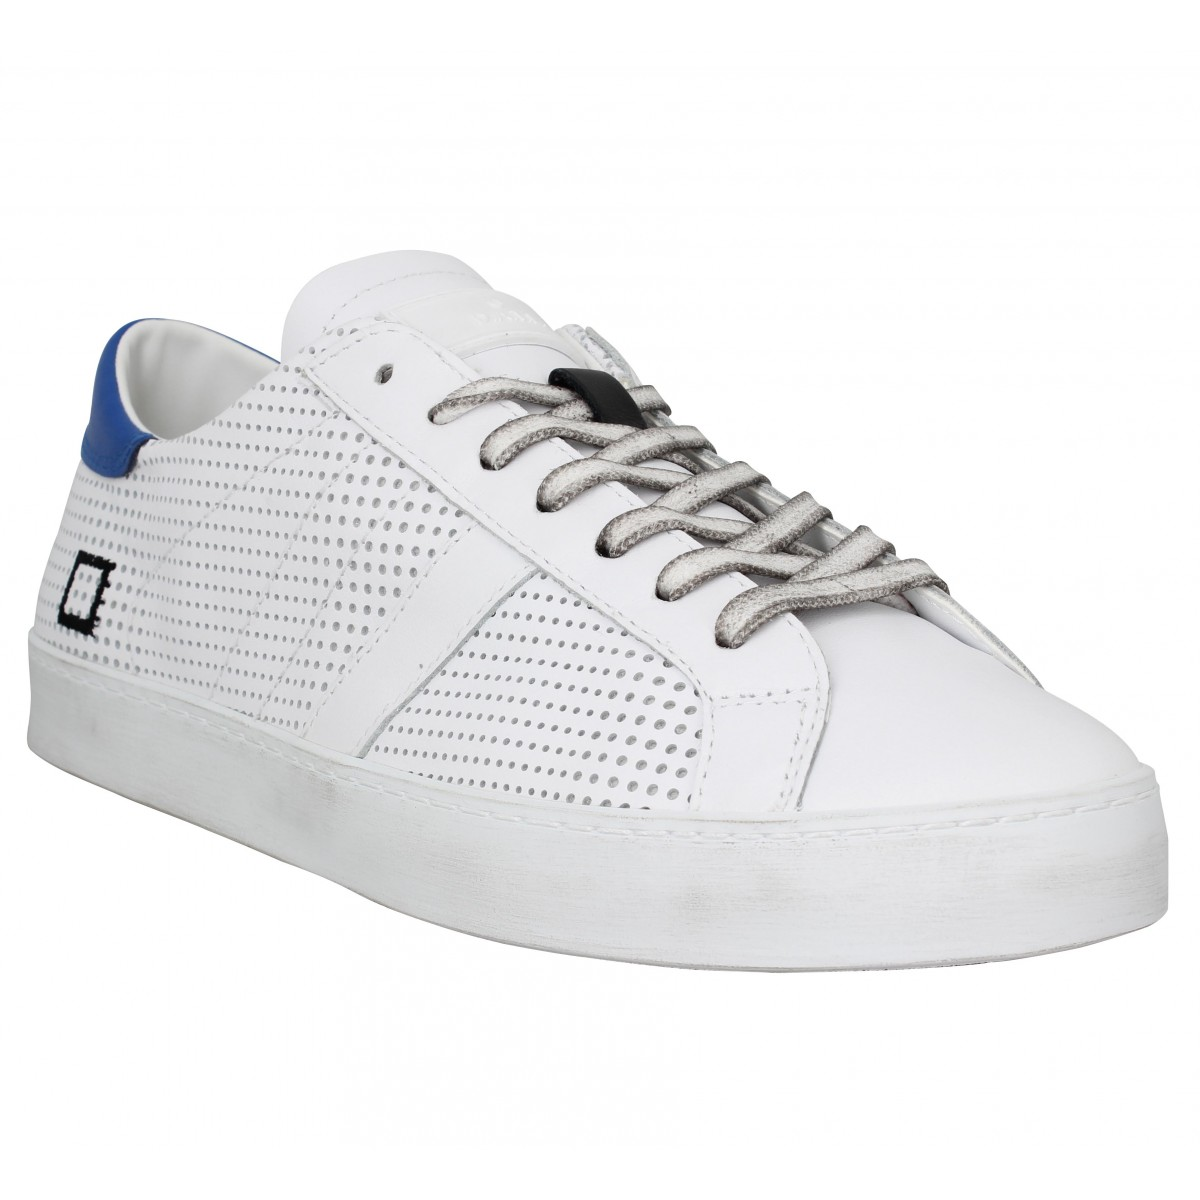 Baskets DATE SNEAKERS Hill Low perforated Homme Blanc